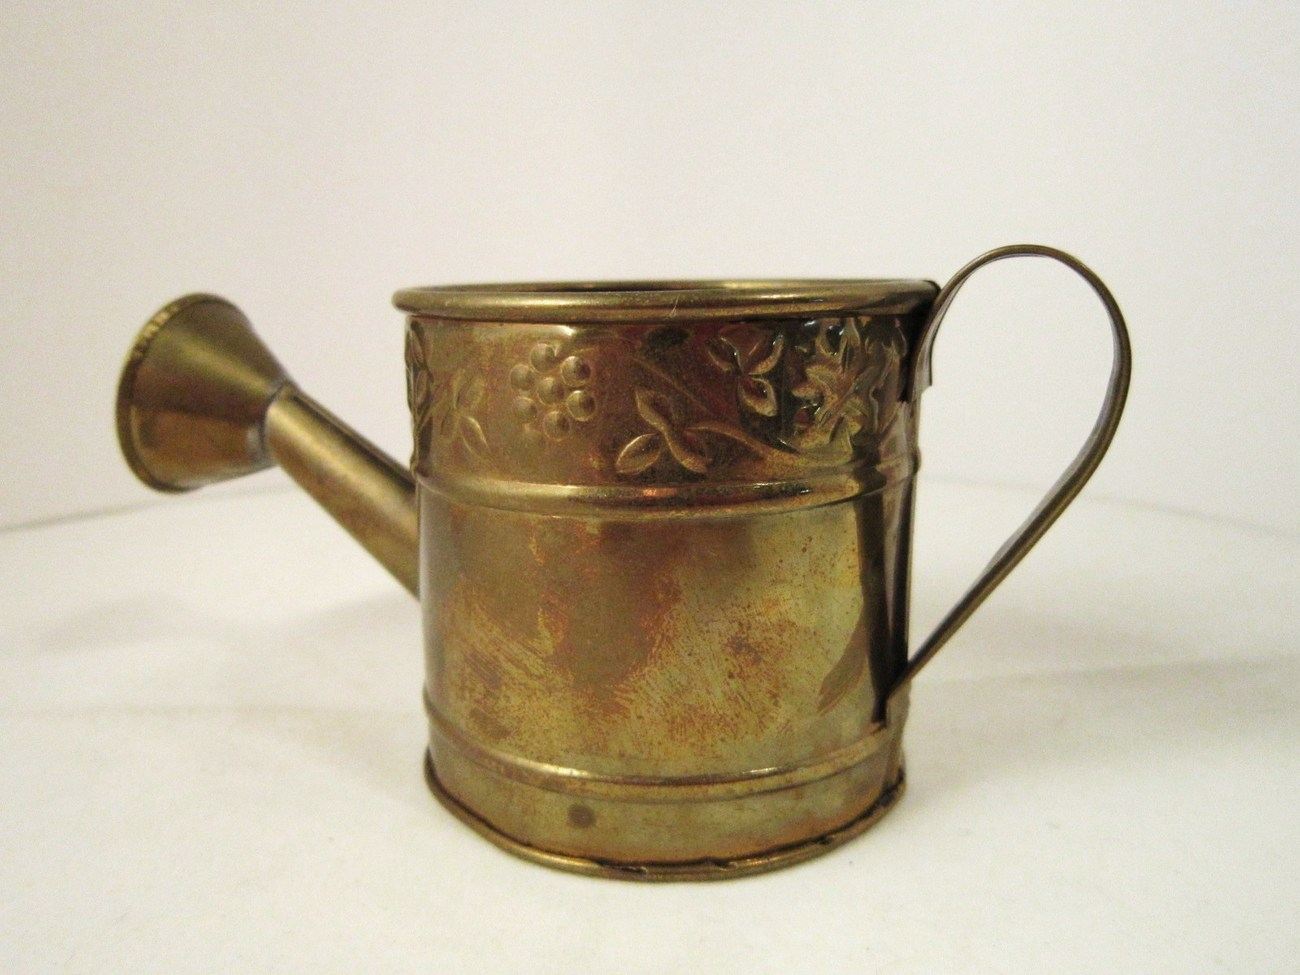 Solid Brass Watering Can with Sprinkler Spout 2.5 inch tall Metal